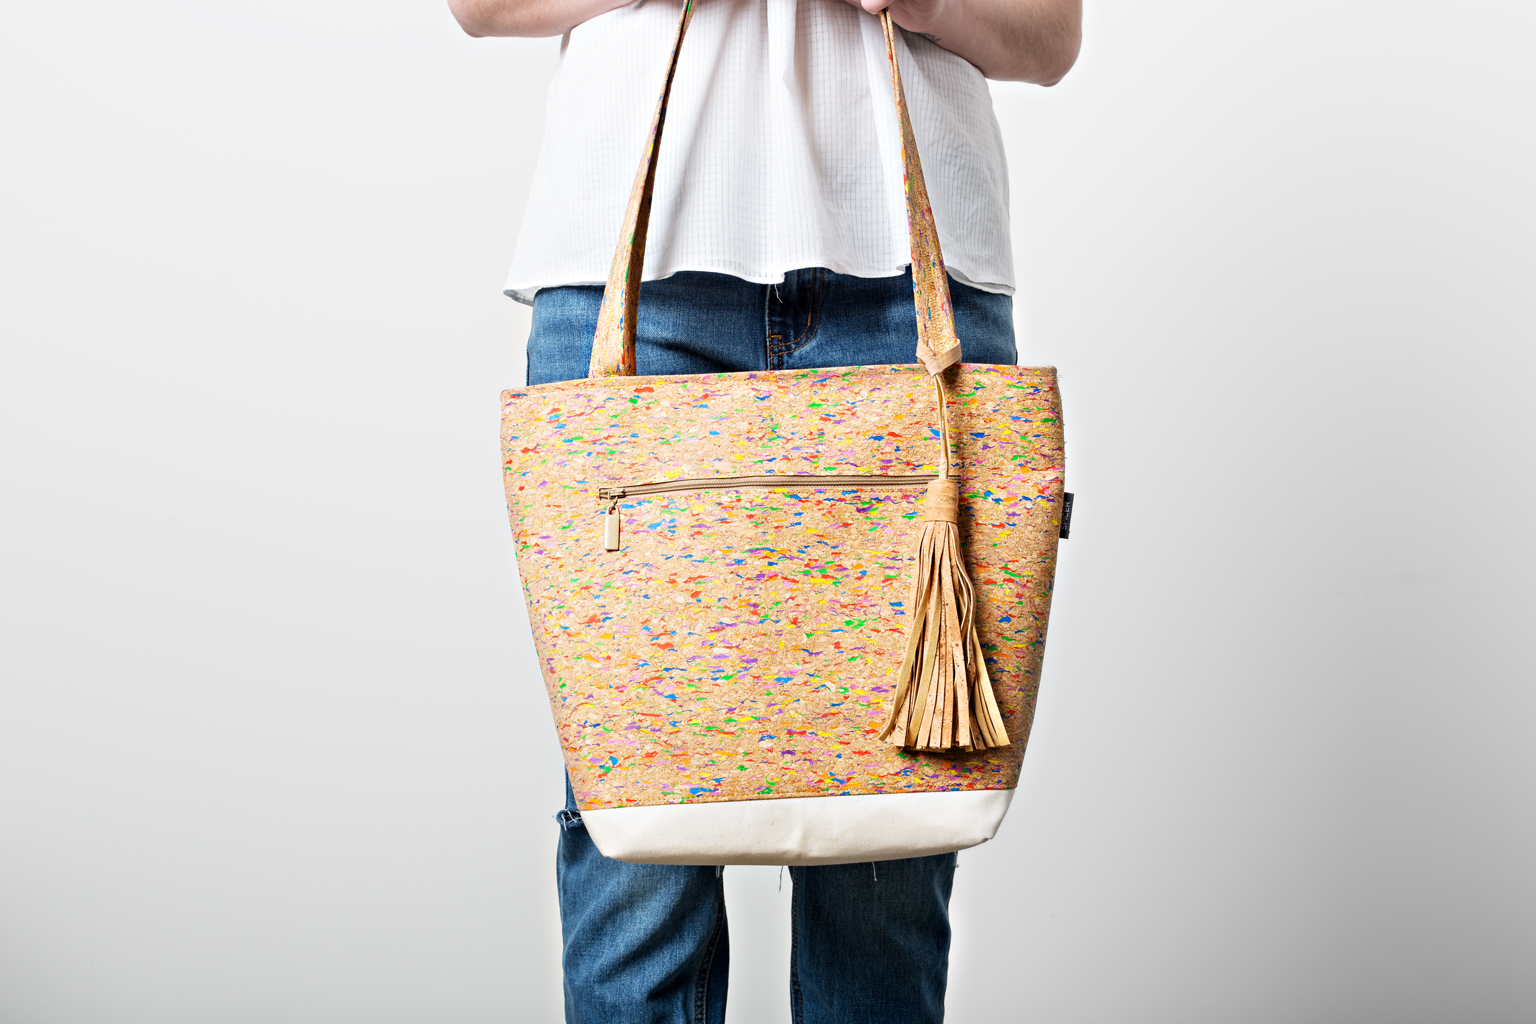 Spicer Bags